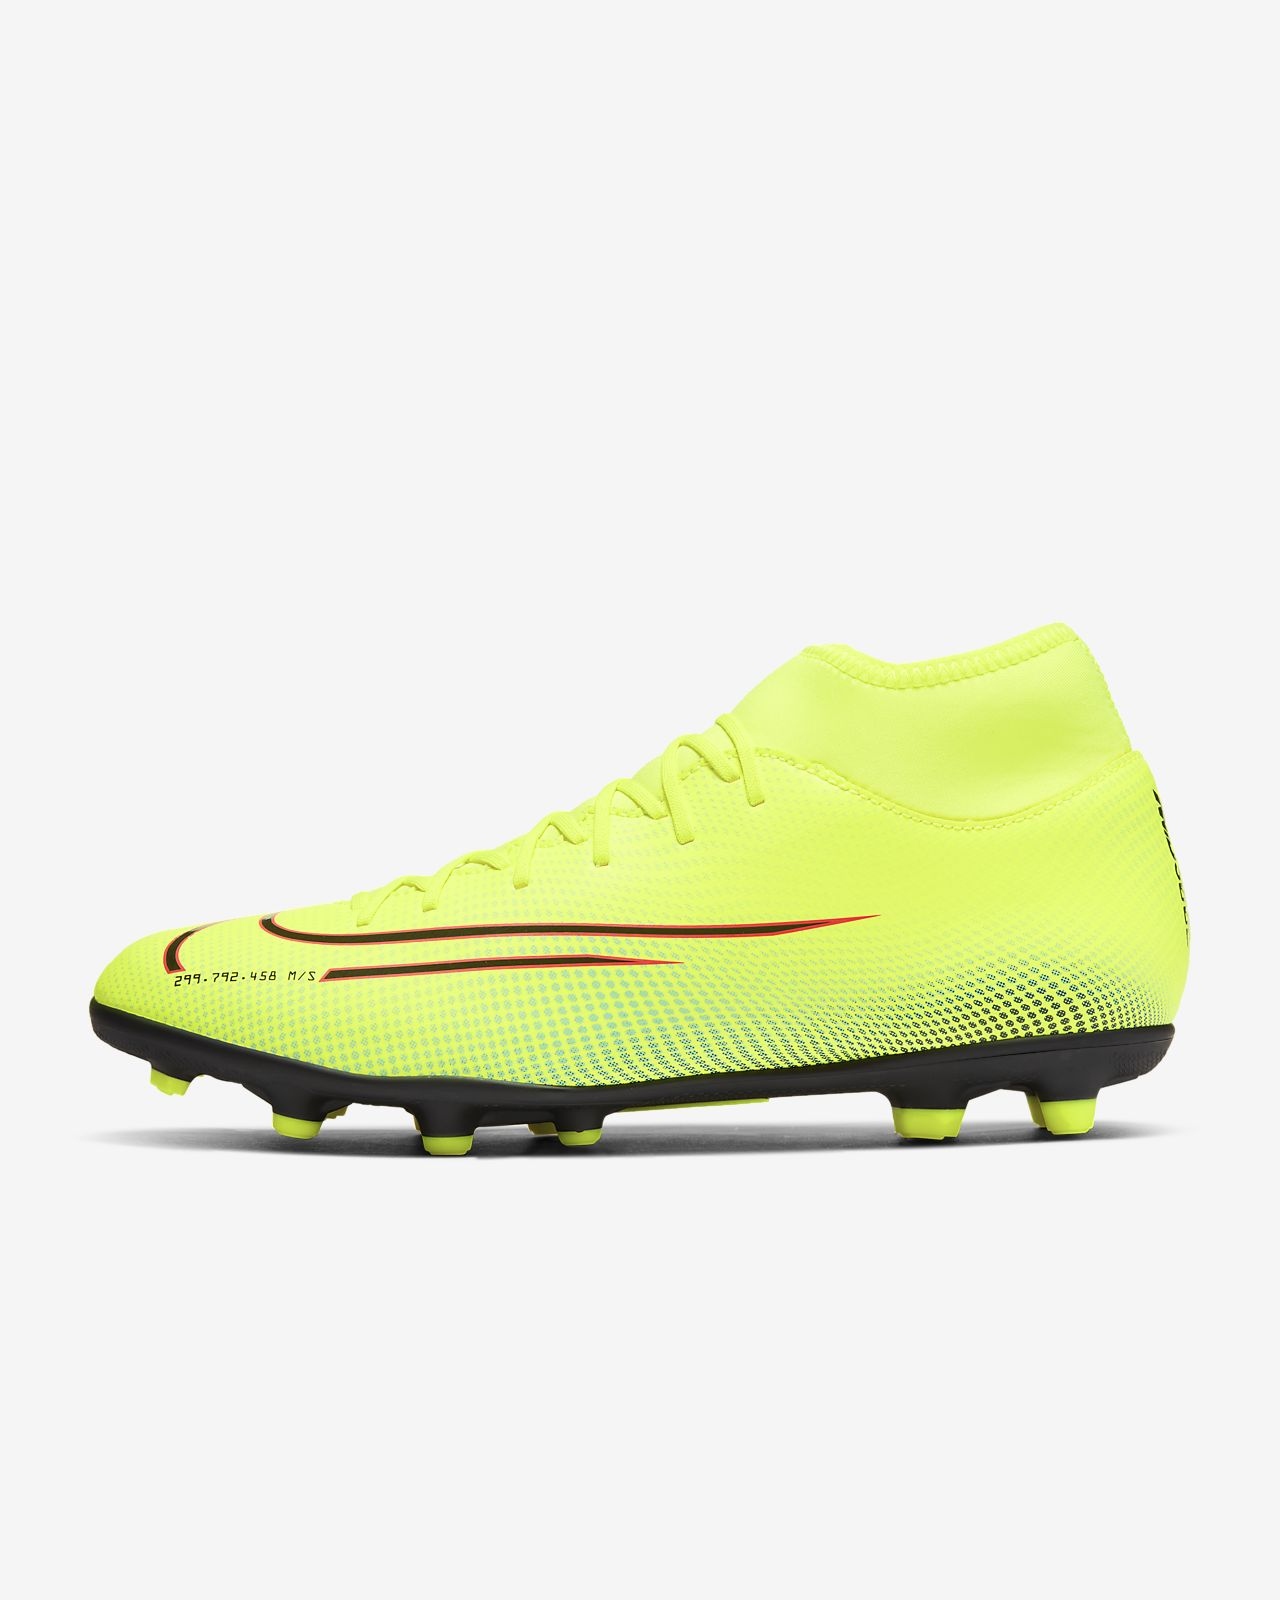 Nike Mercurial Superfly 7 Club MDS MG Multi-Ground Soccer Cleat